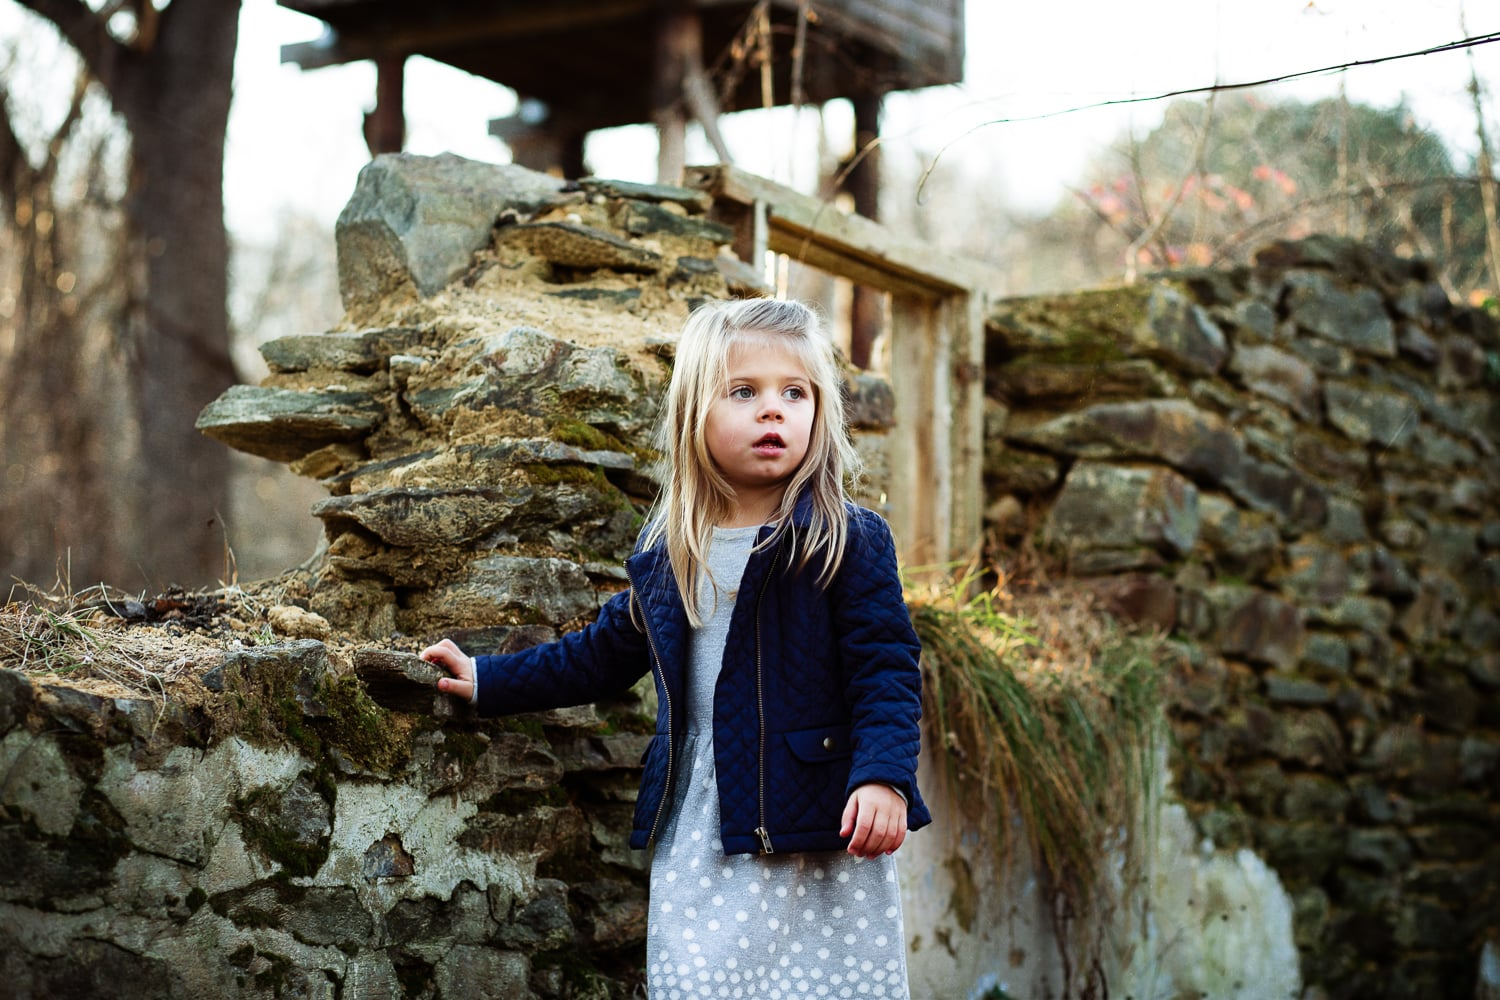 adorable blonde child exploring old stone structure with her family.